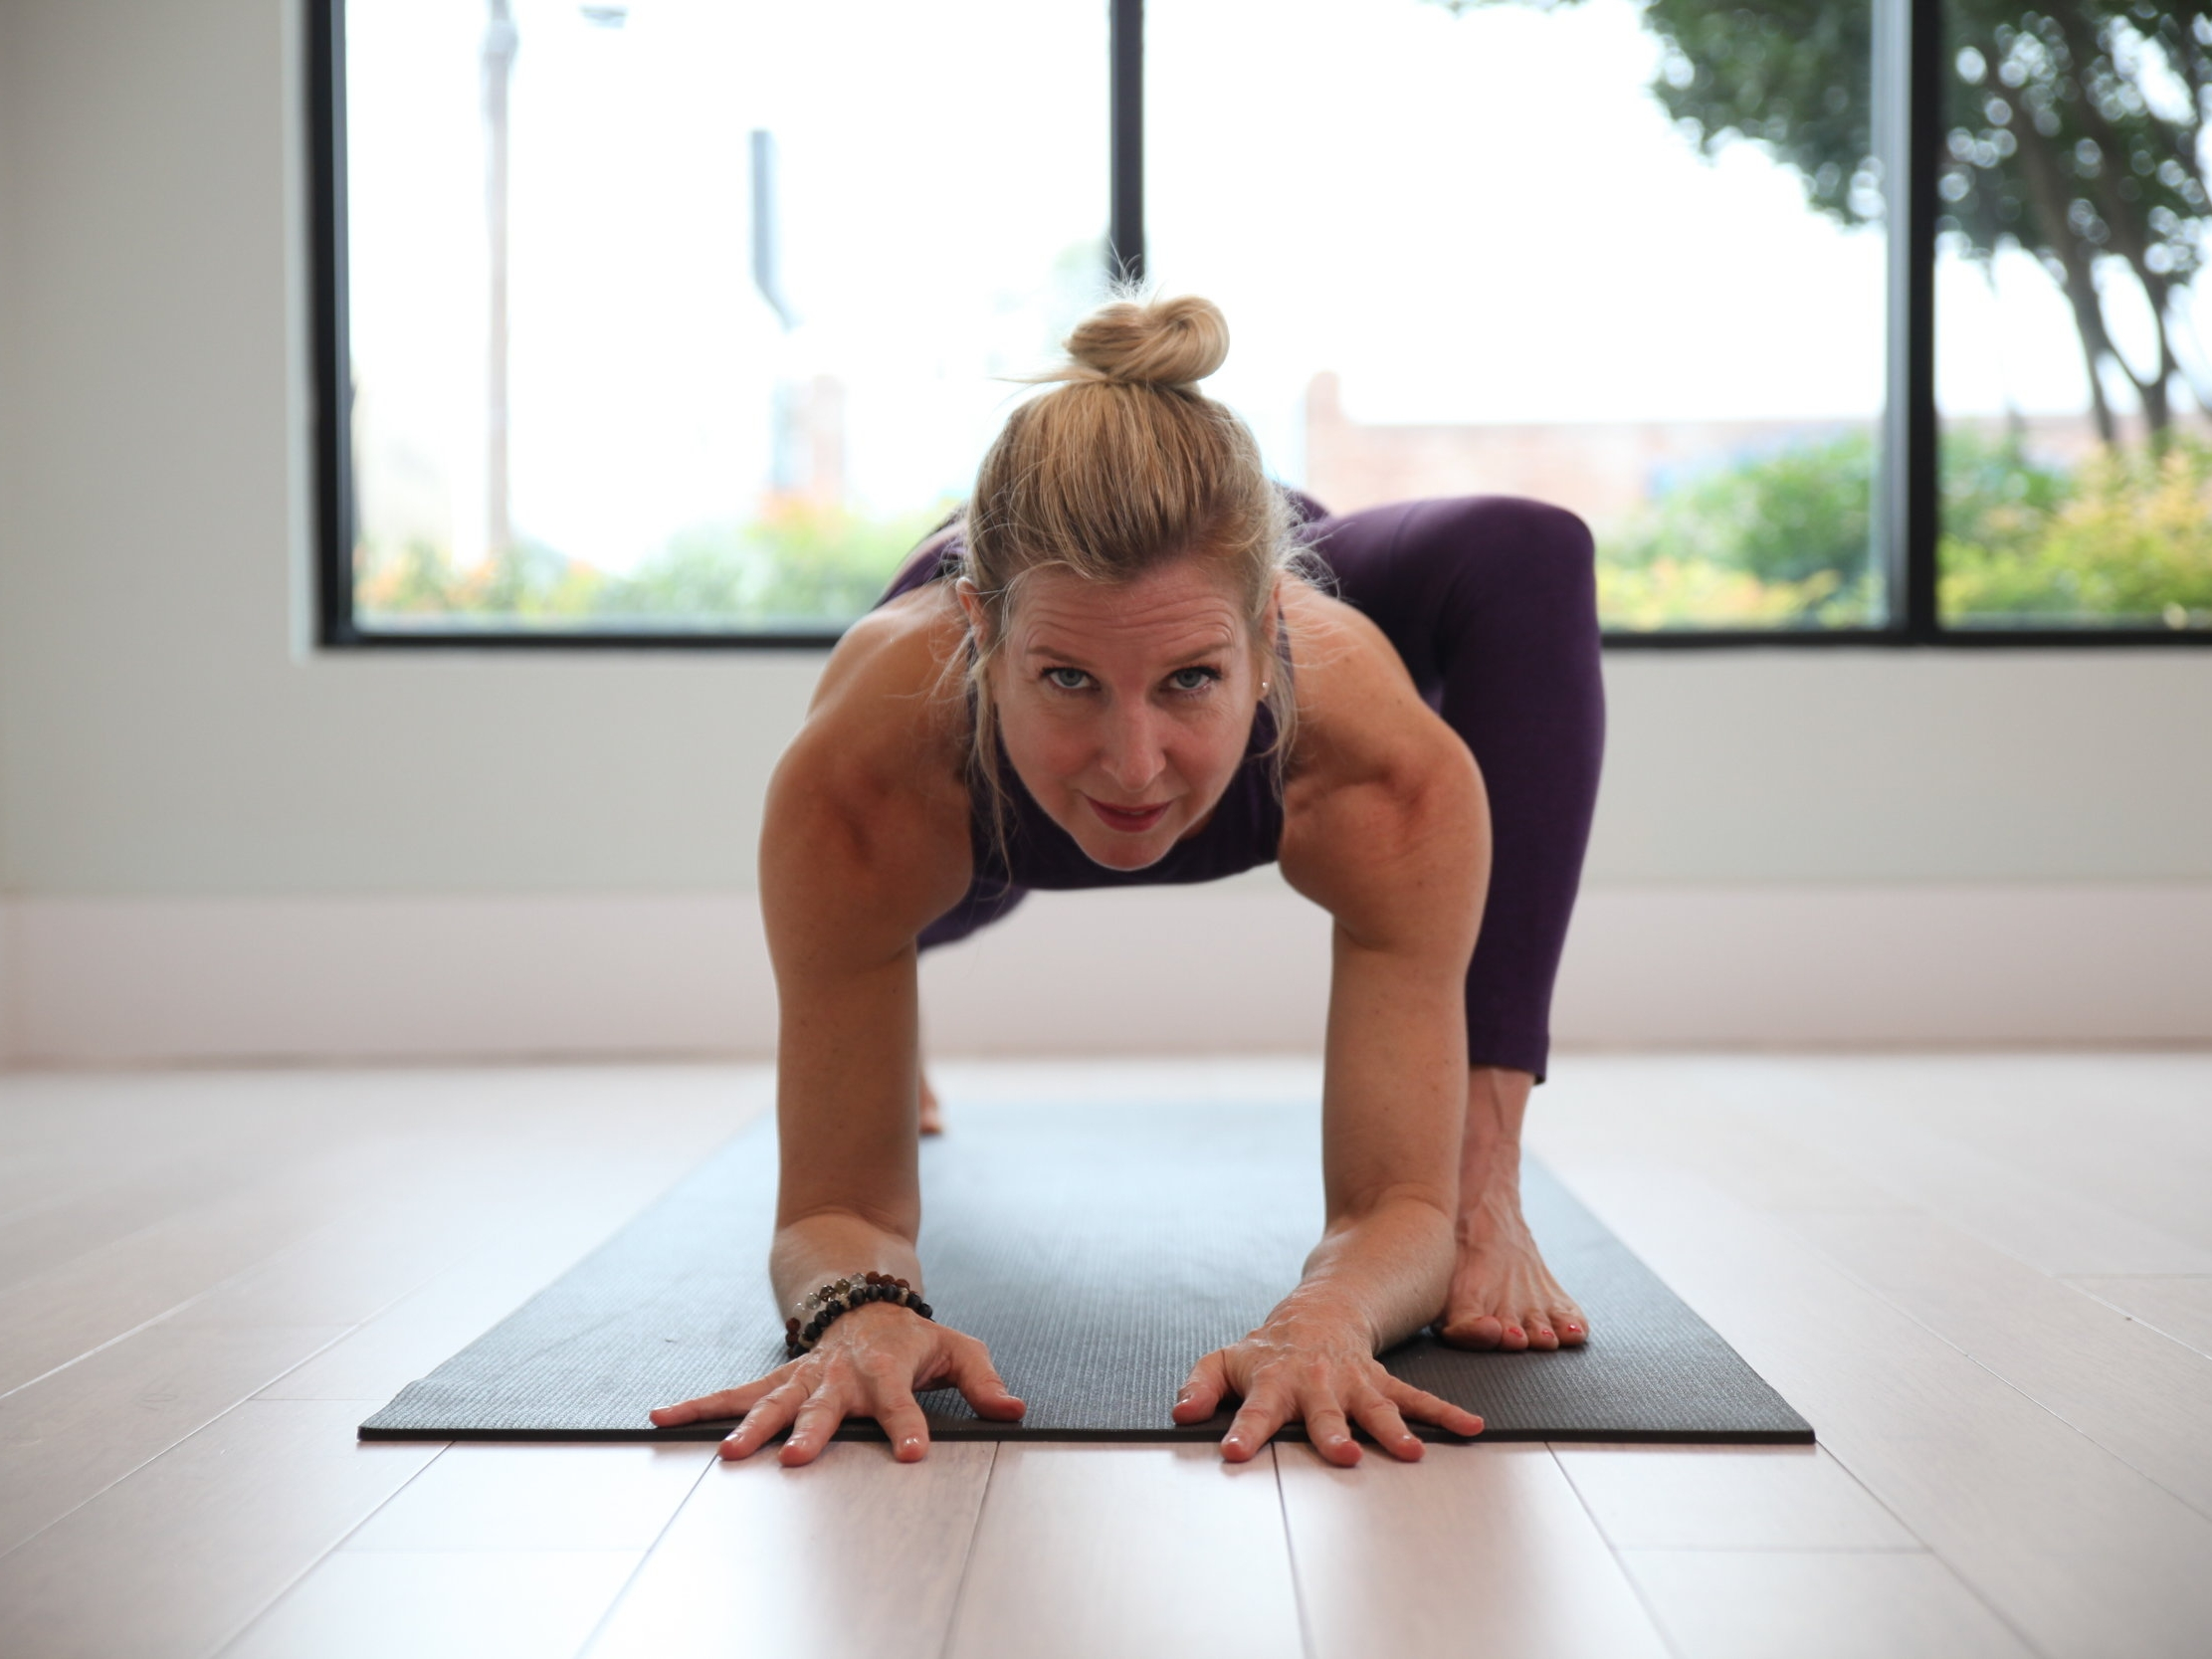 Balance - When we create balance on our mat, we create balance in our life. Dive deep into your body with this 75-minute Hips and Hamstrings flow. This class includes sun salutations, warriors, standing balancing poses, backbends and hips.Length: 75 minutesCost: $7.99